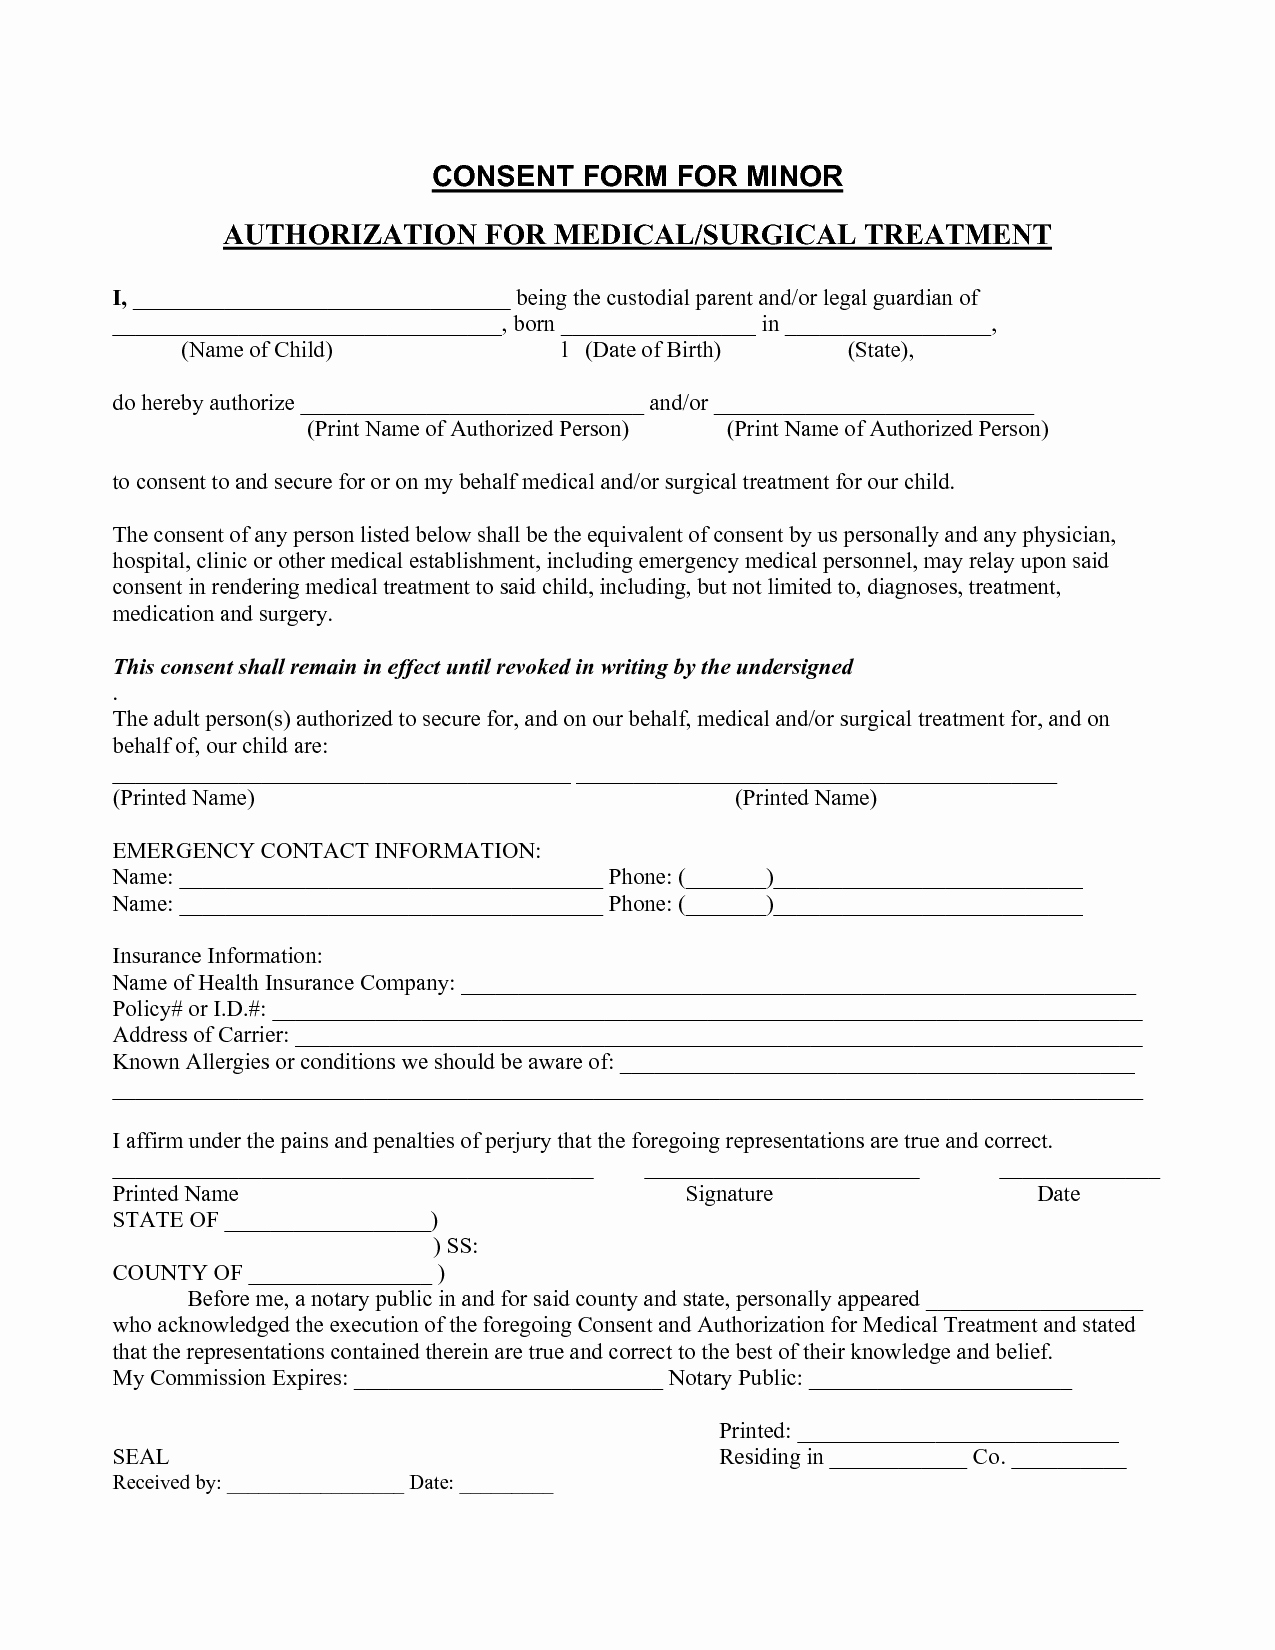 Medical Consent form Templates Luxury Medical Consent form Template